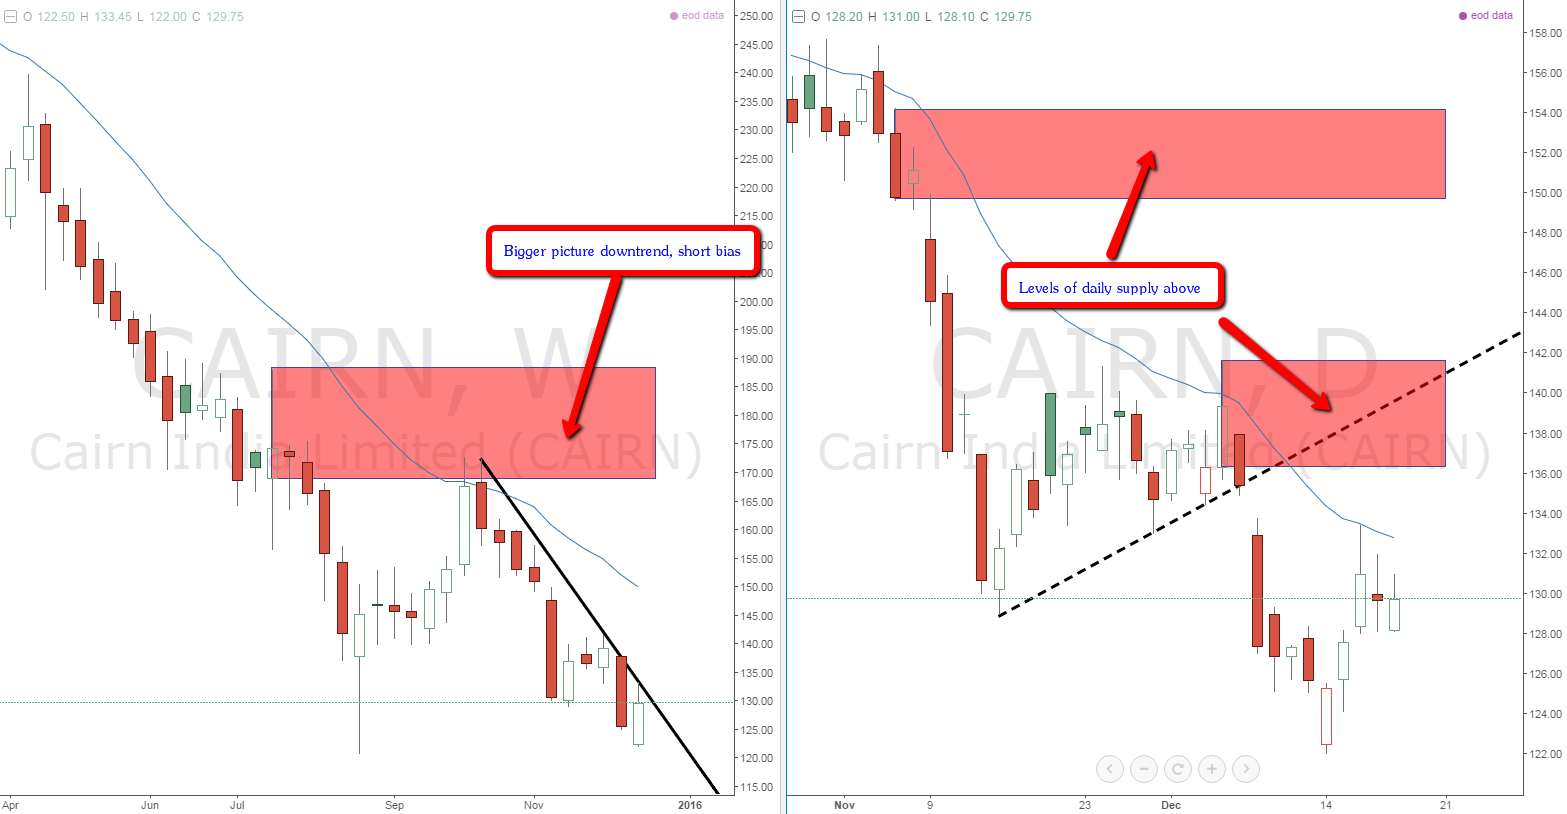 cairn_daily